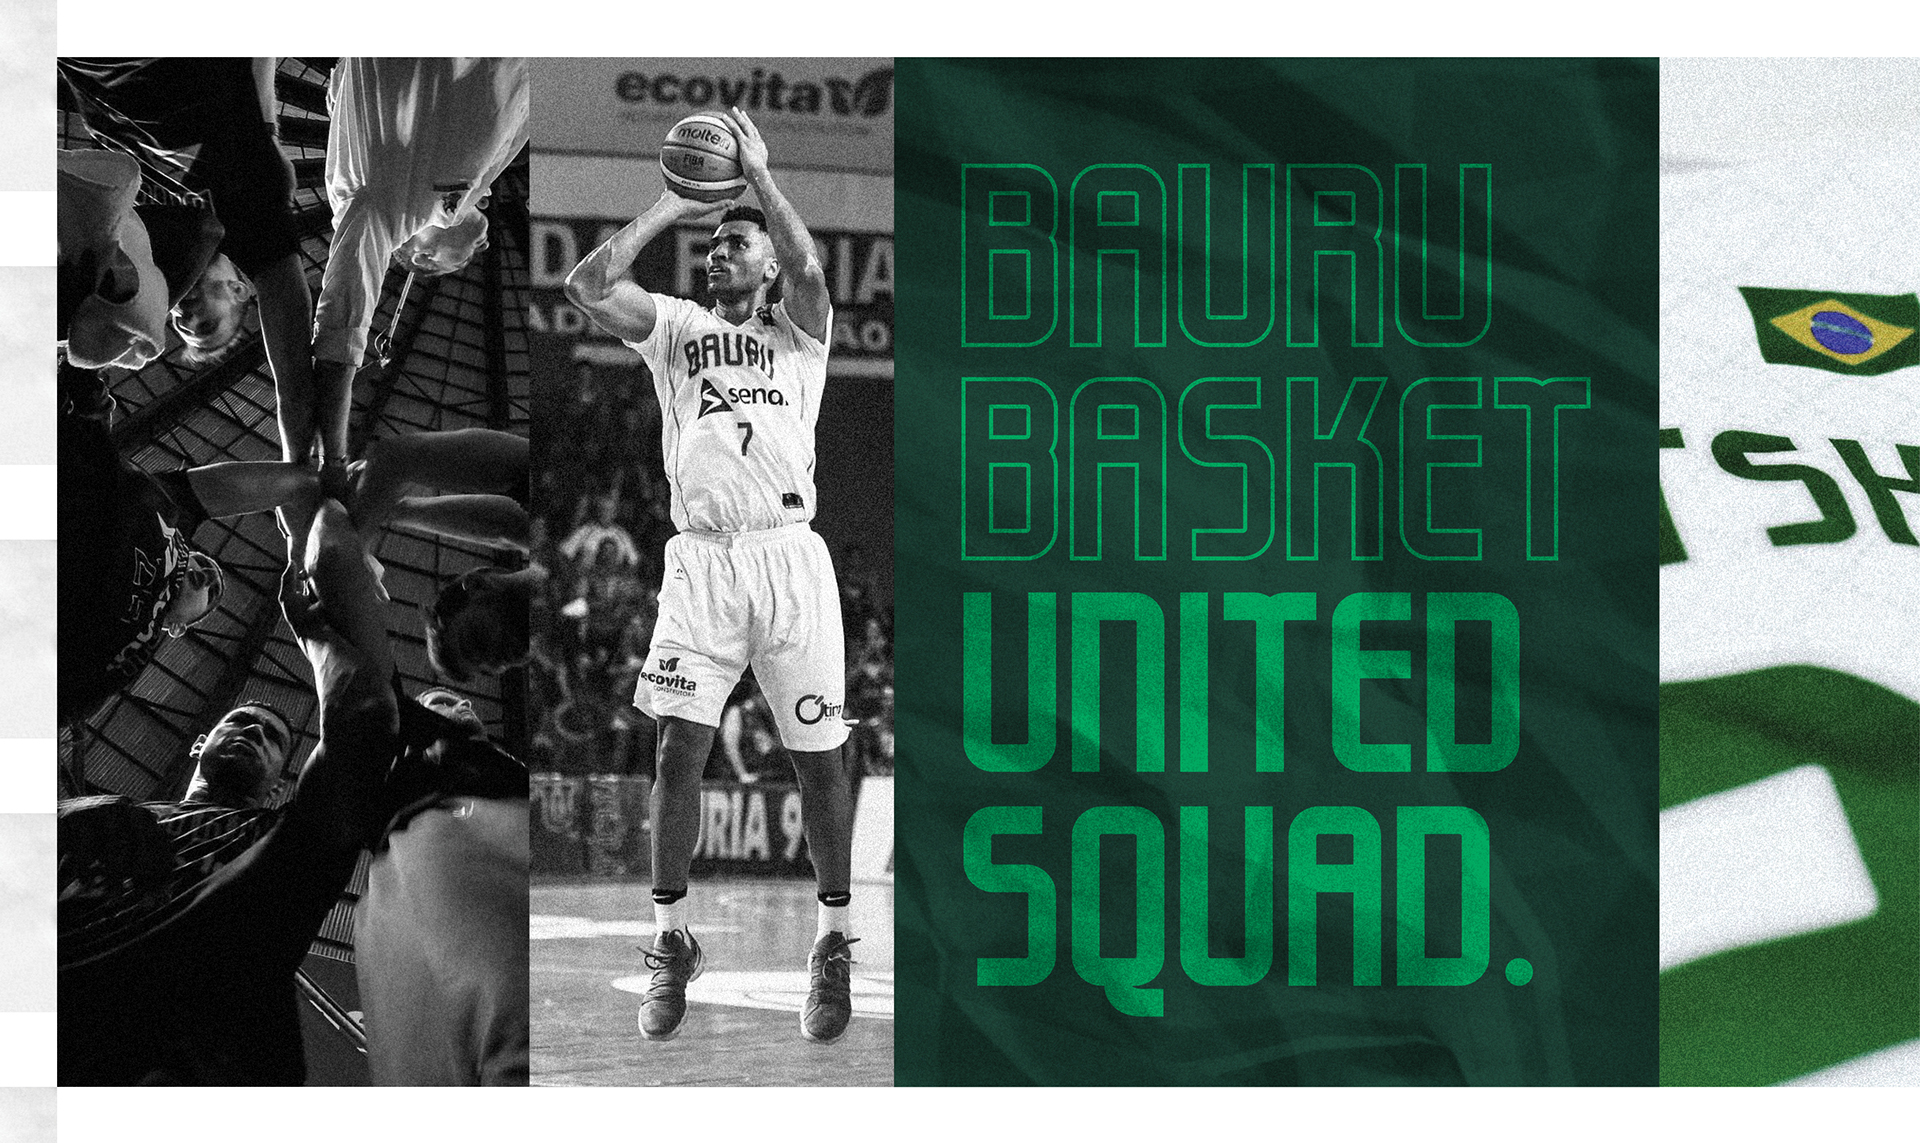 Bauru Basket - United Squad